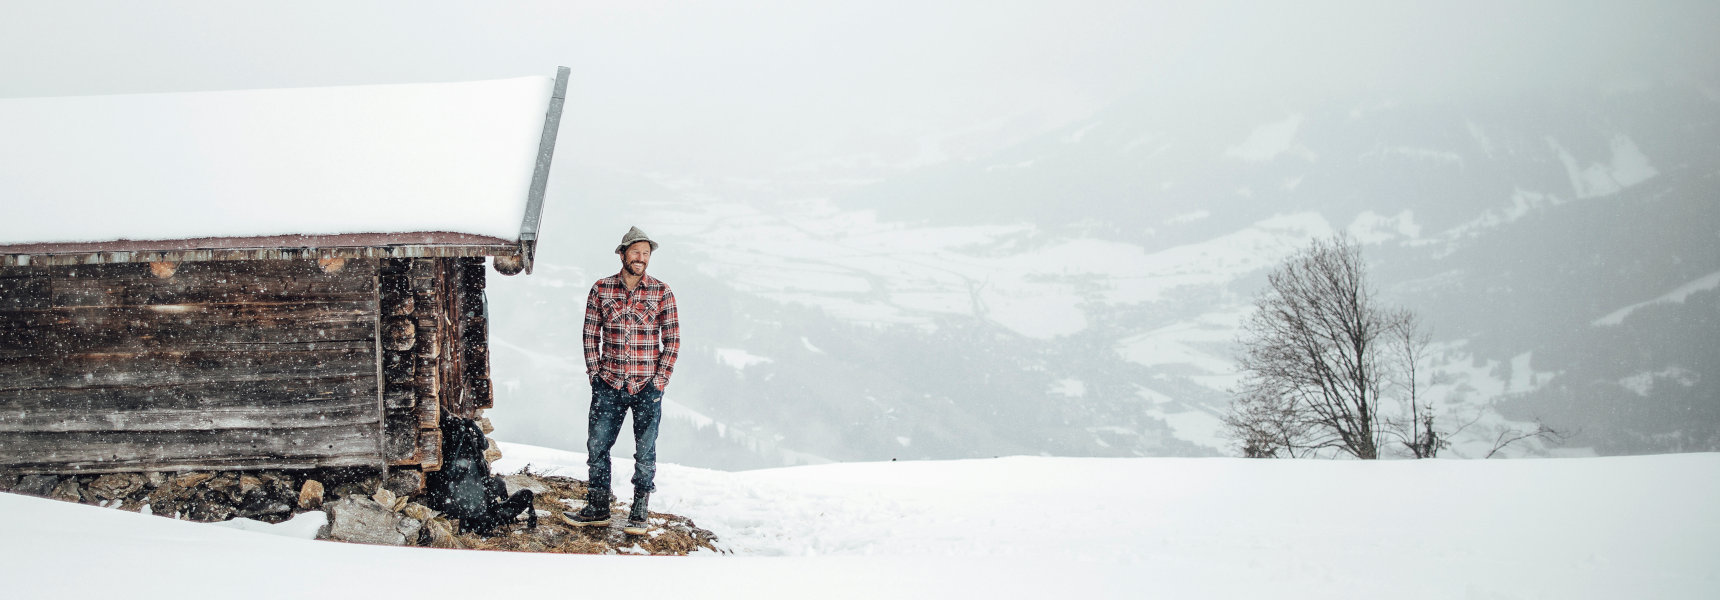 Outdoor cook Markus Sämmer stands in front of a snowy hut in the mountains